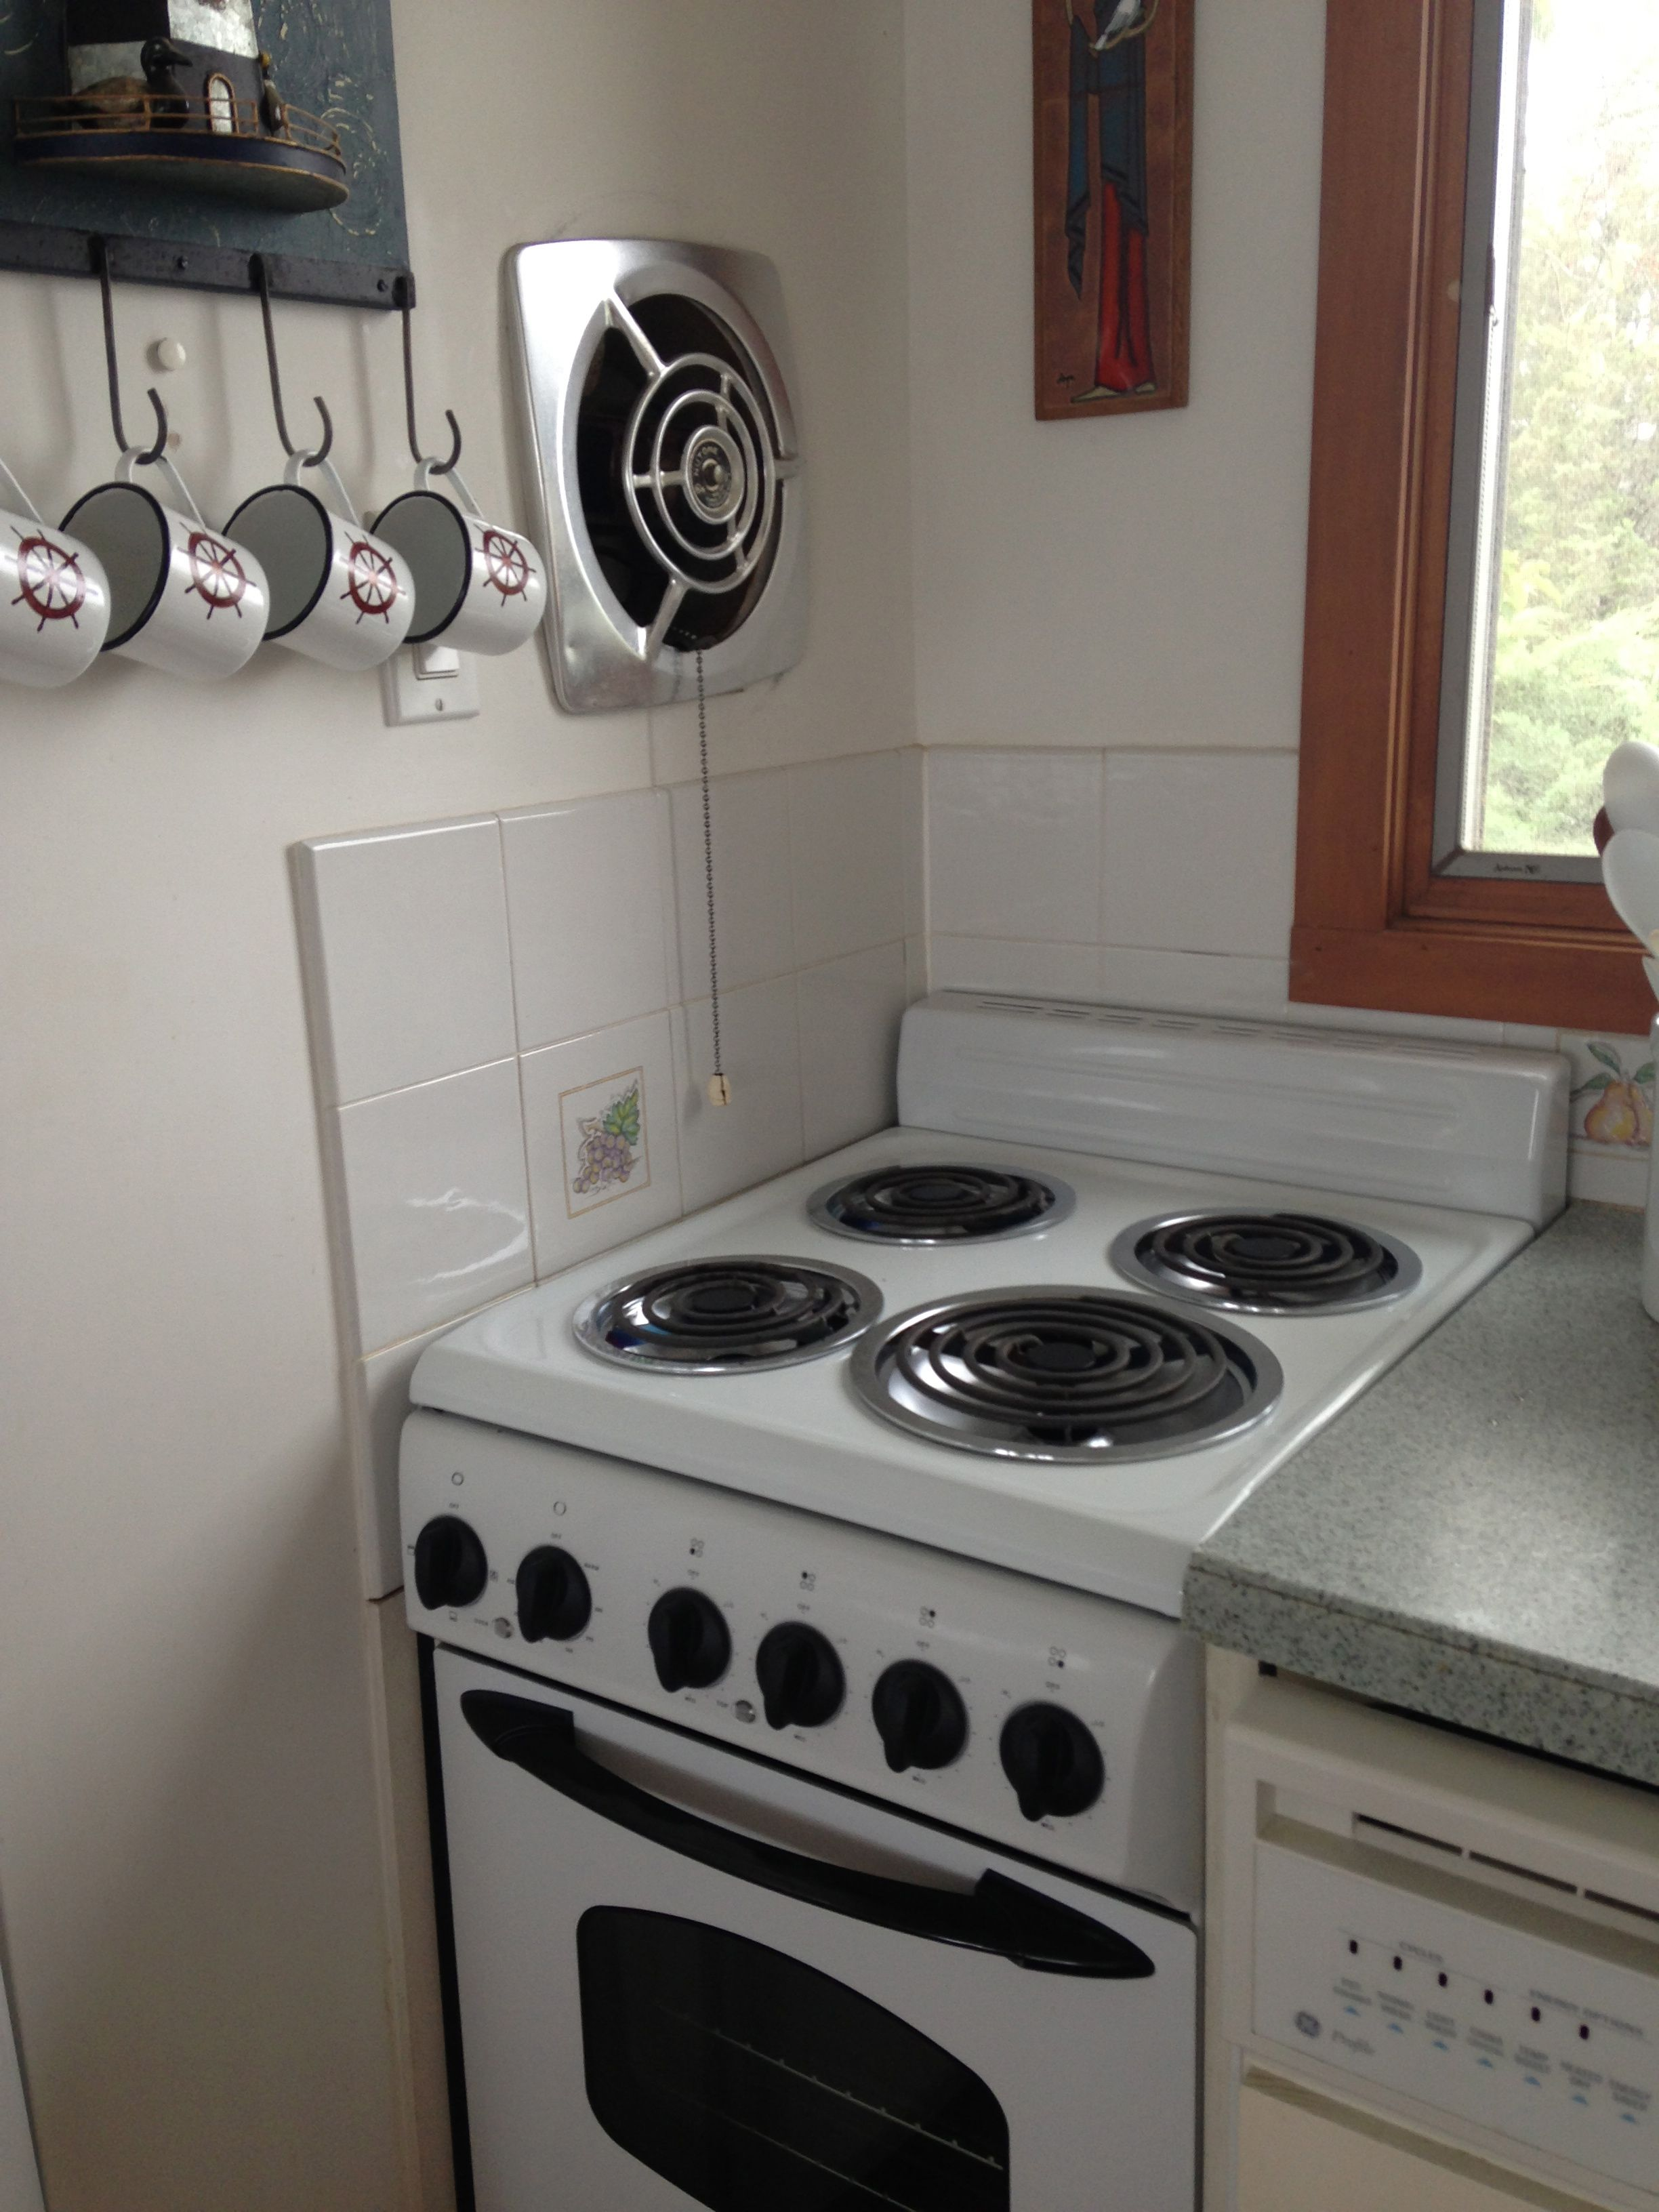 Exhaust Fans For Kitchens Kitchen Remodel Jacksonville Fl My Cottage With Vintage Nutone Fan